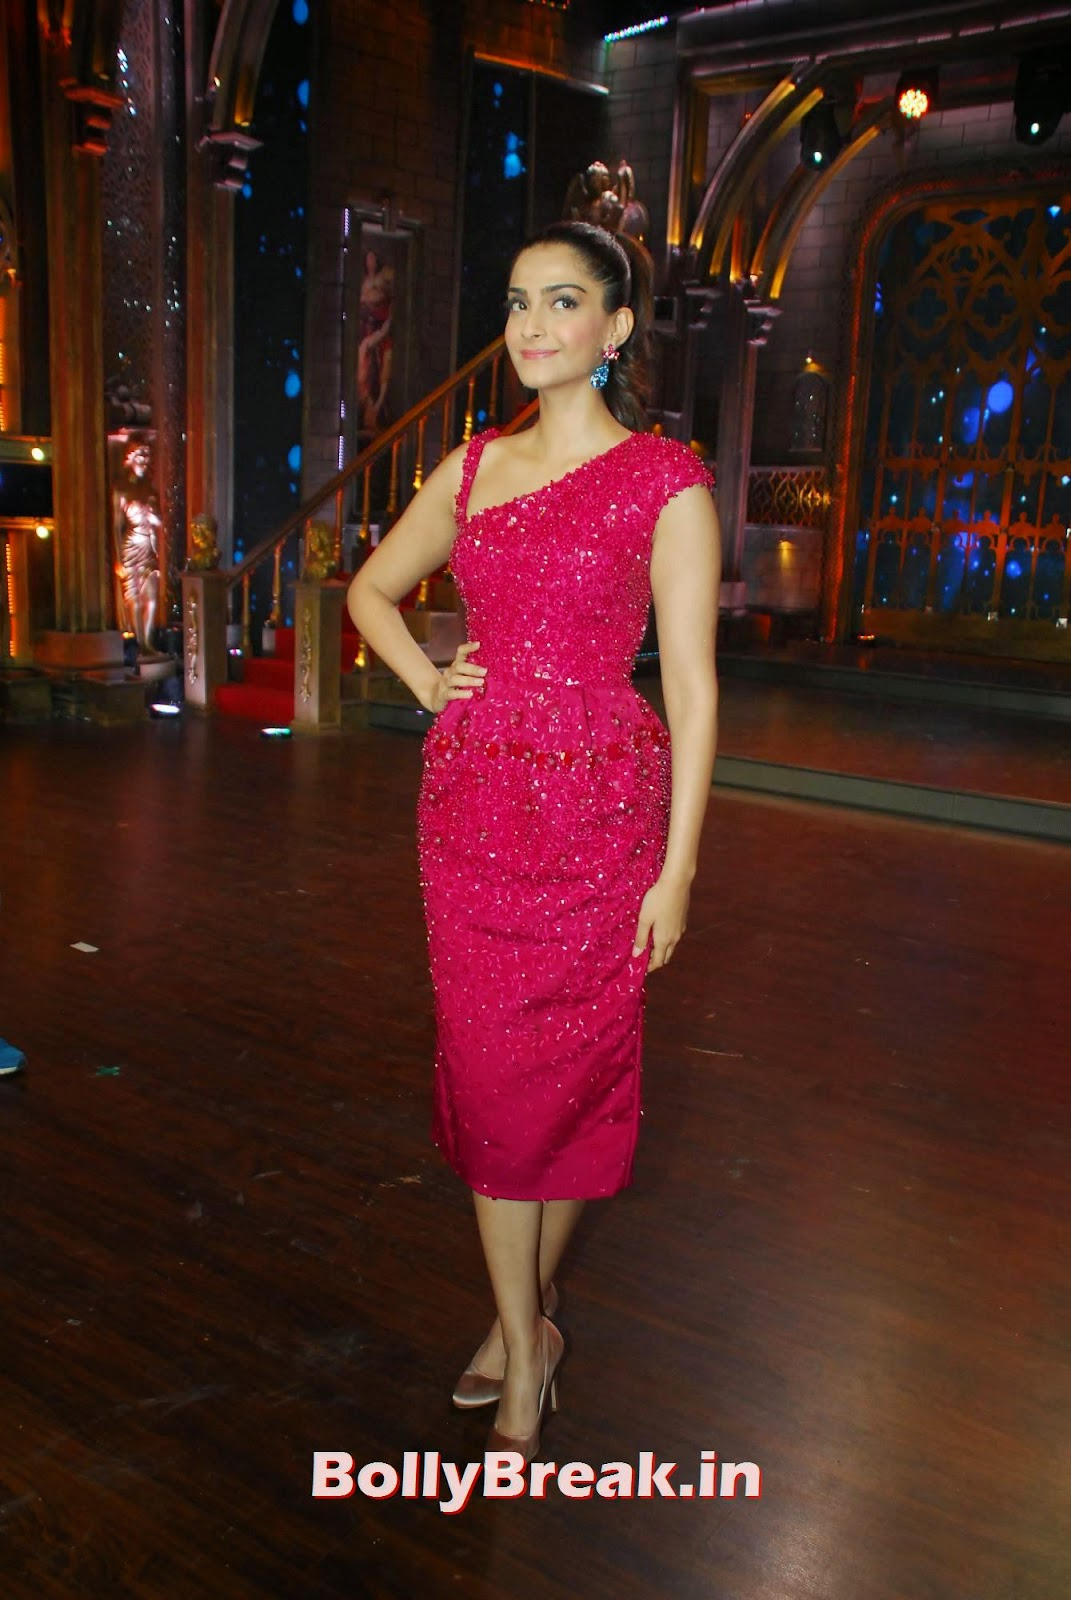 Sonam Kapoor In Red Dress - Hot Images - 11 Pics-6099